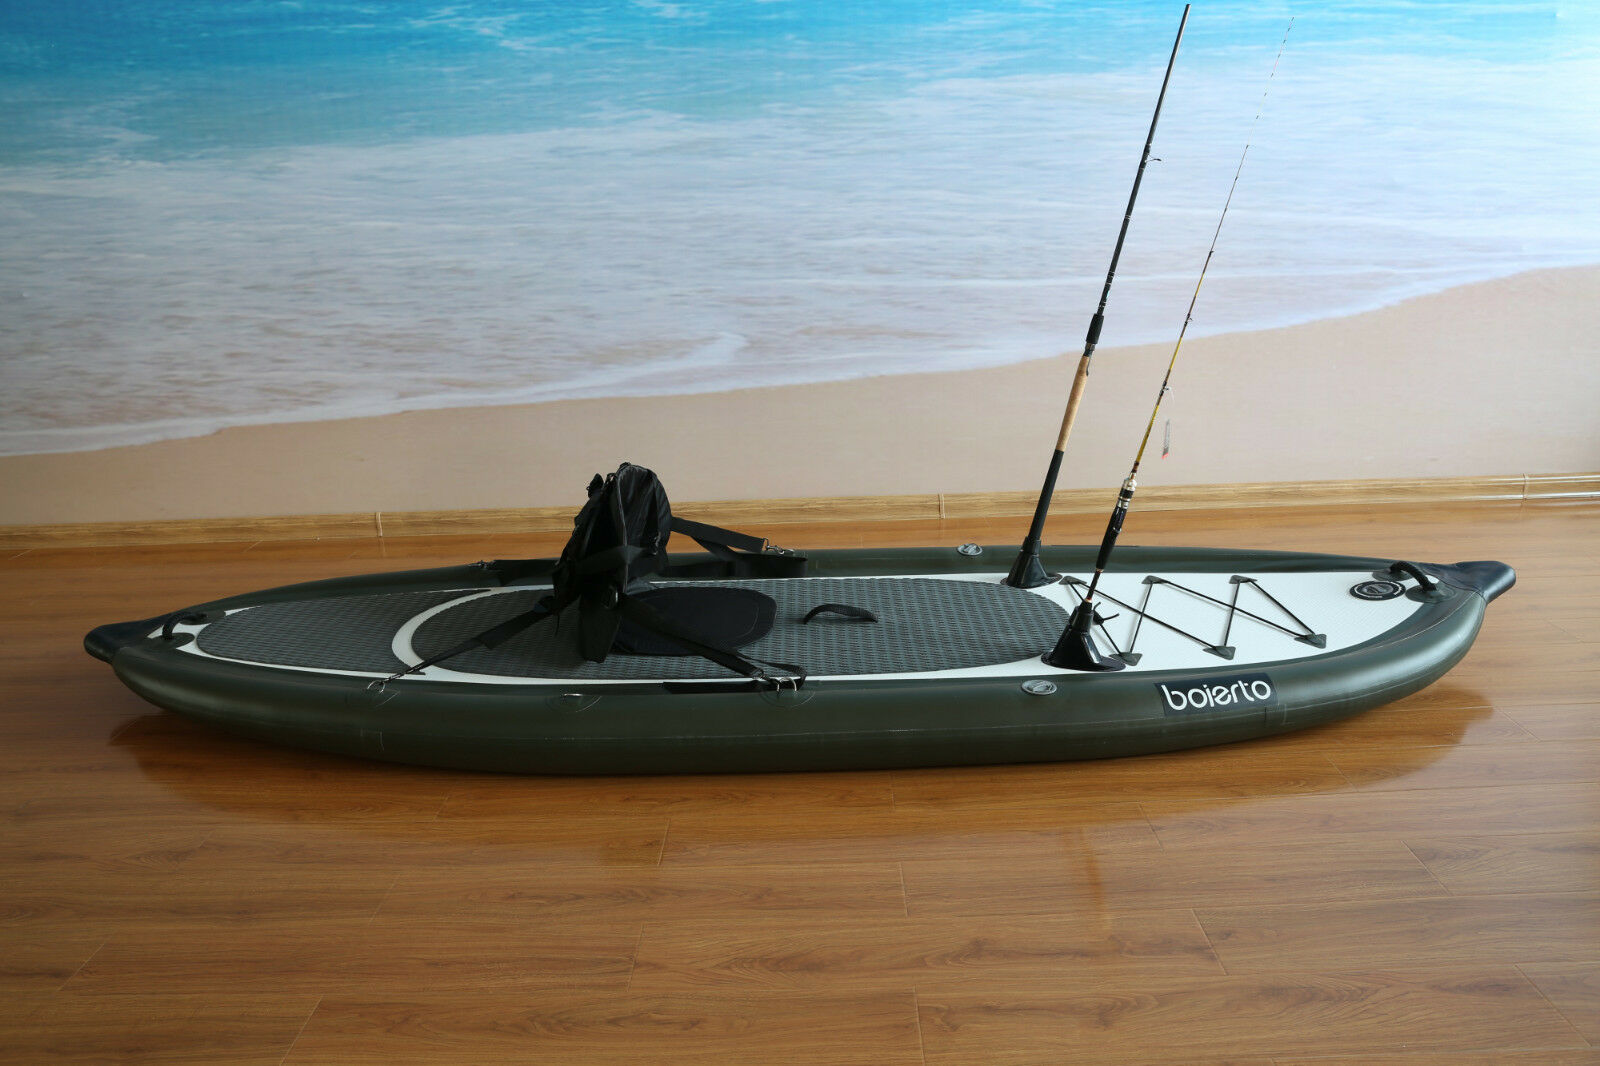 Bolerto portable inflatable fly fishing boat dinghy sport for Inflatable pontoon boat fishing